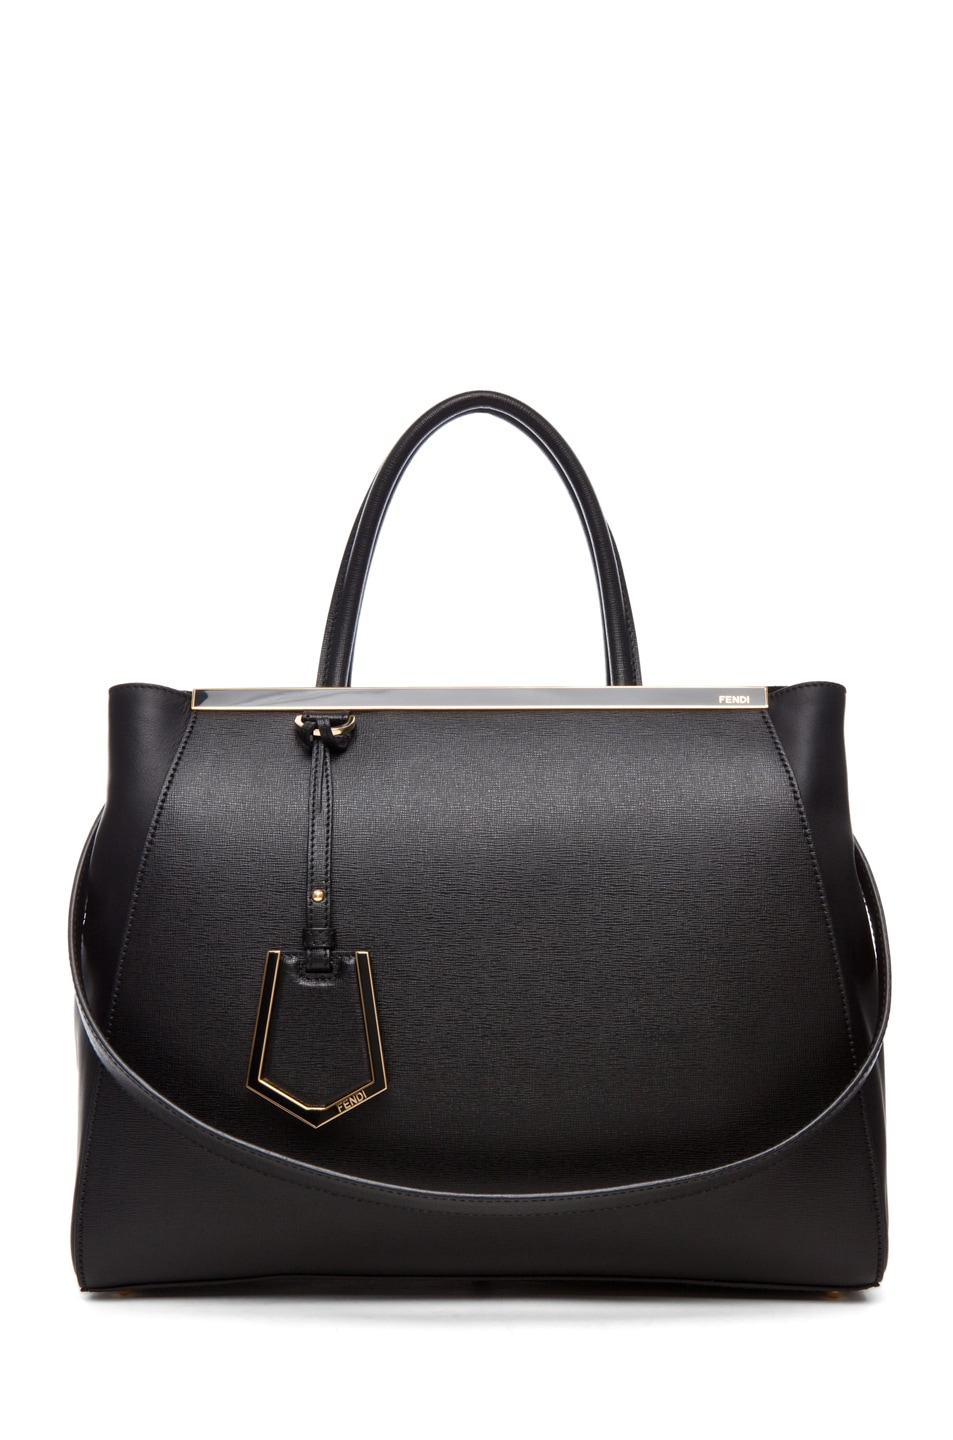 Image 1 of Fendi Medium Shopper Bag in Black